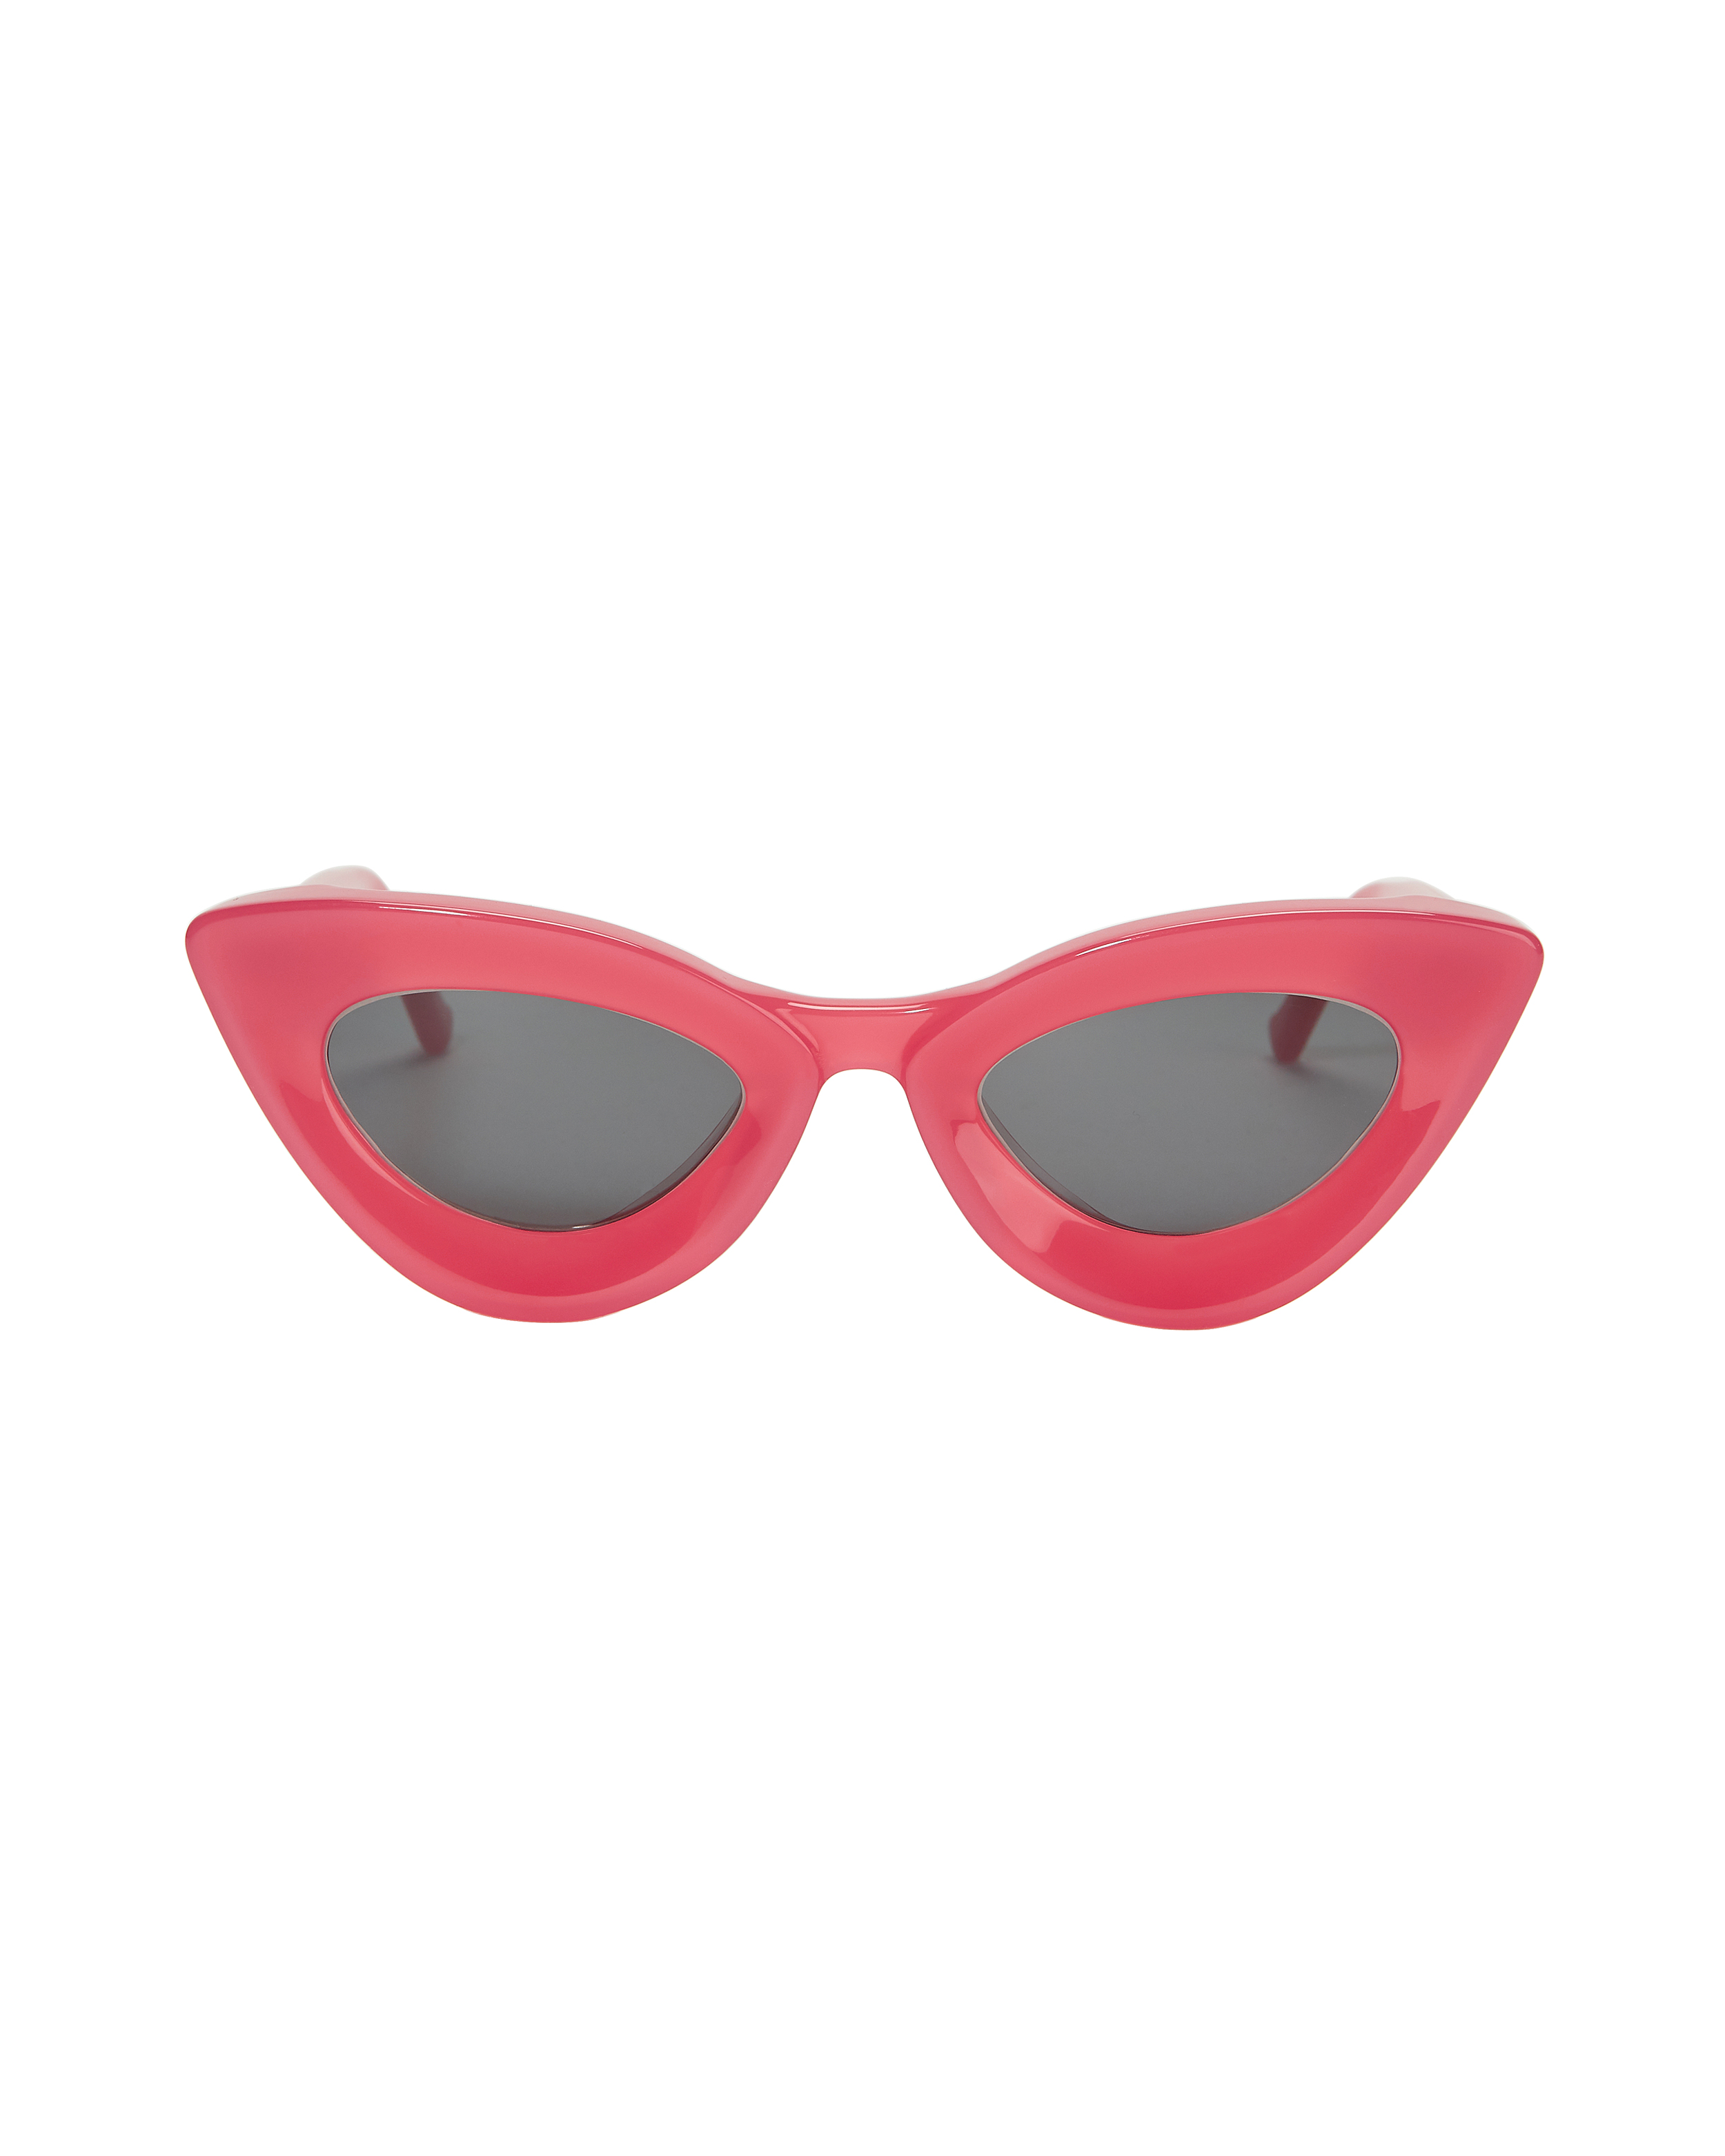 Iemall Pink Cat Eye Sunglasses by Grey Ant